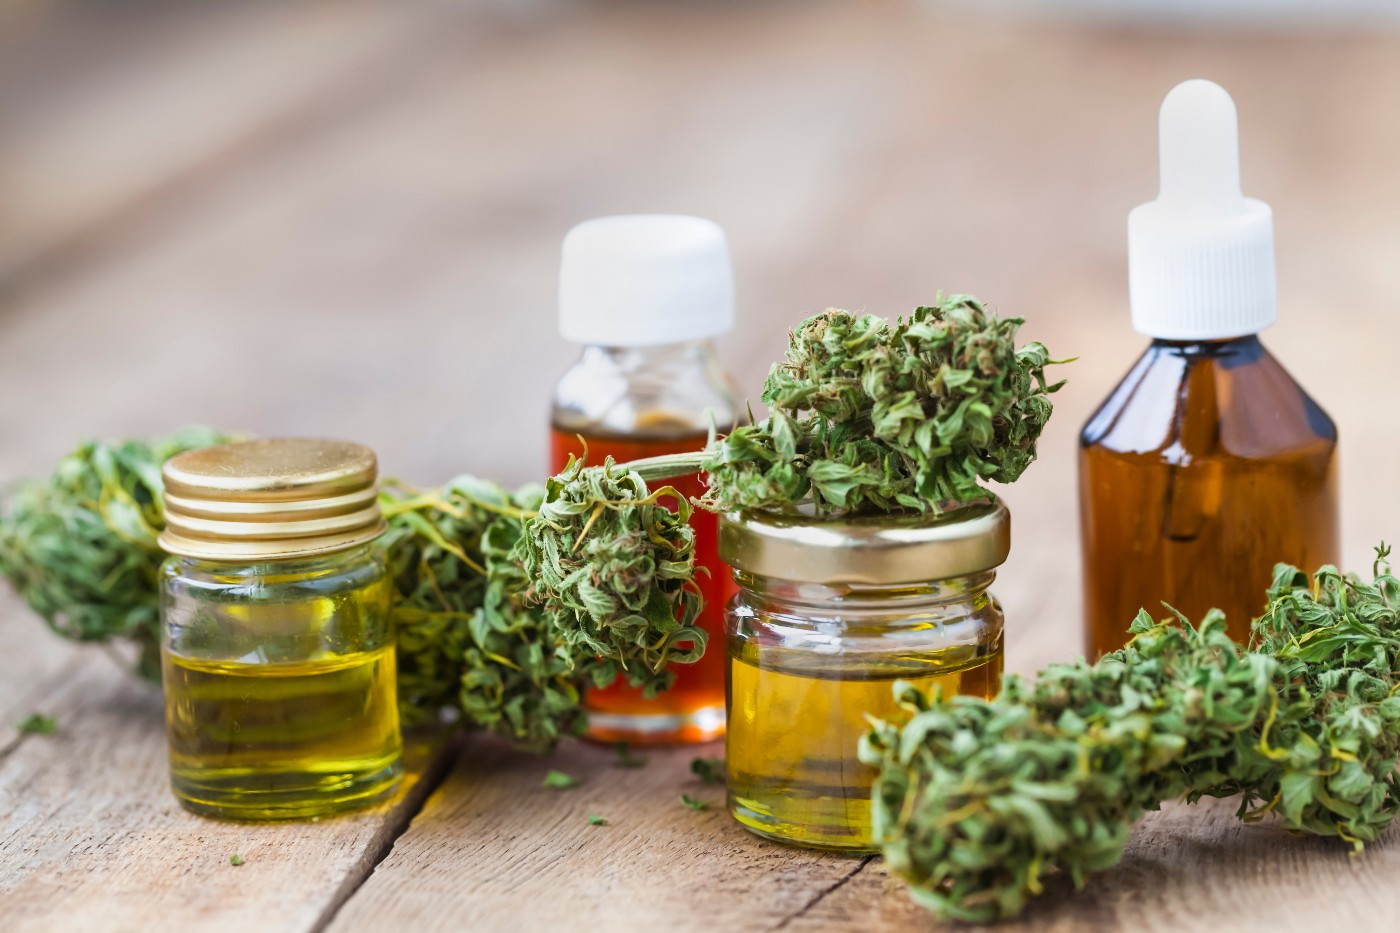 The CBD delivery (CBD livraison) is fast and anonymous, in 48 or 72 hours you will receive your package